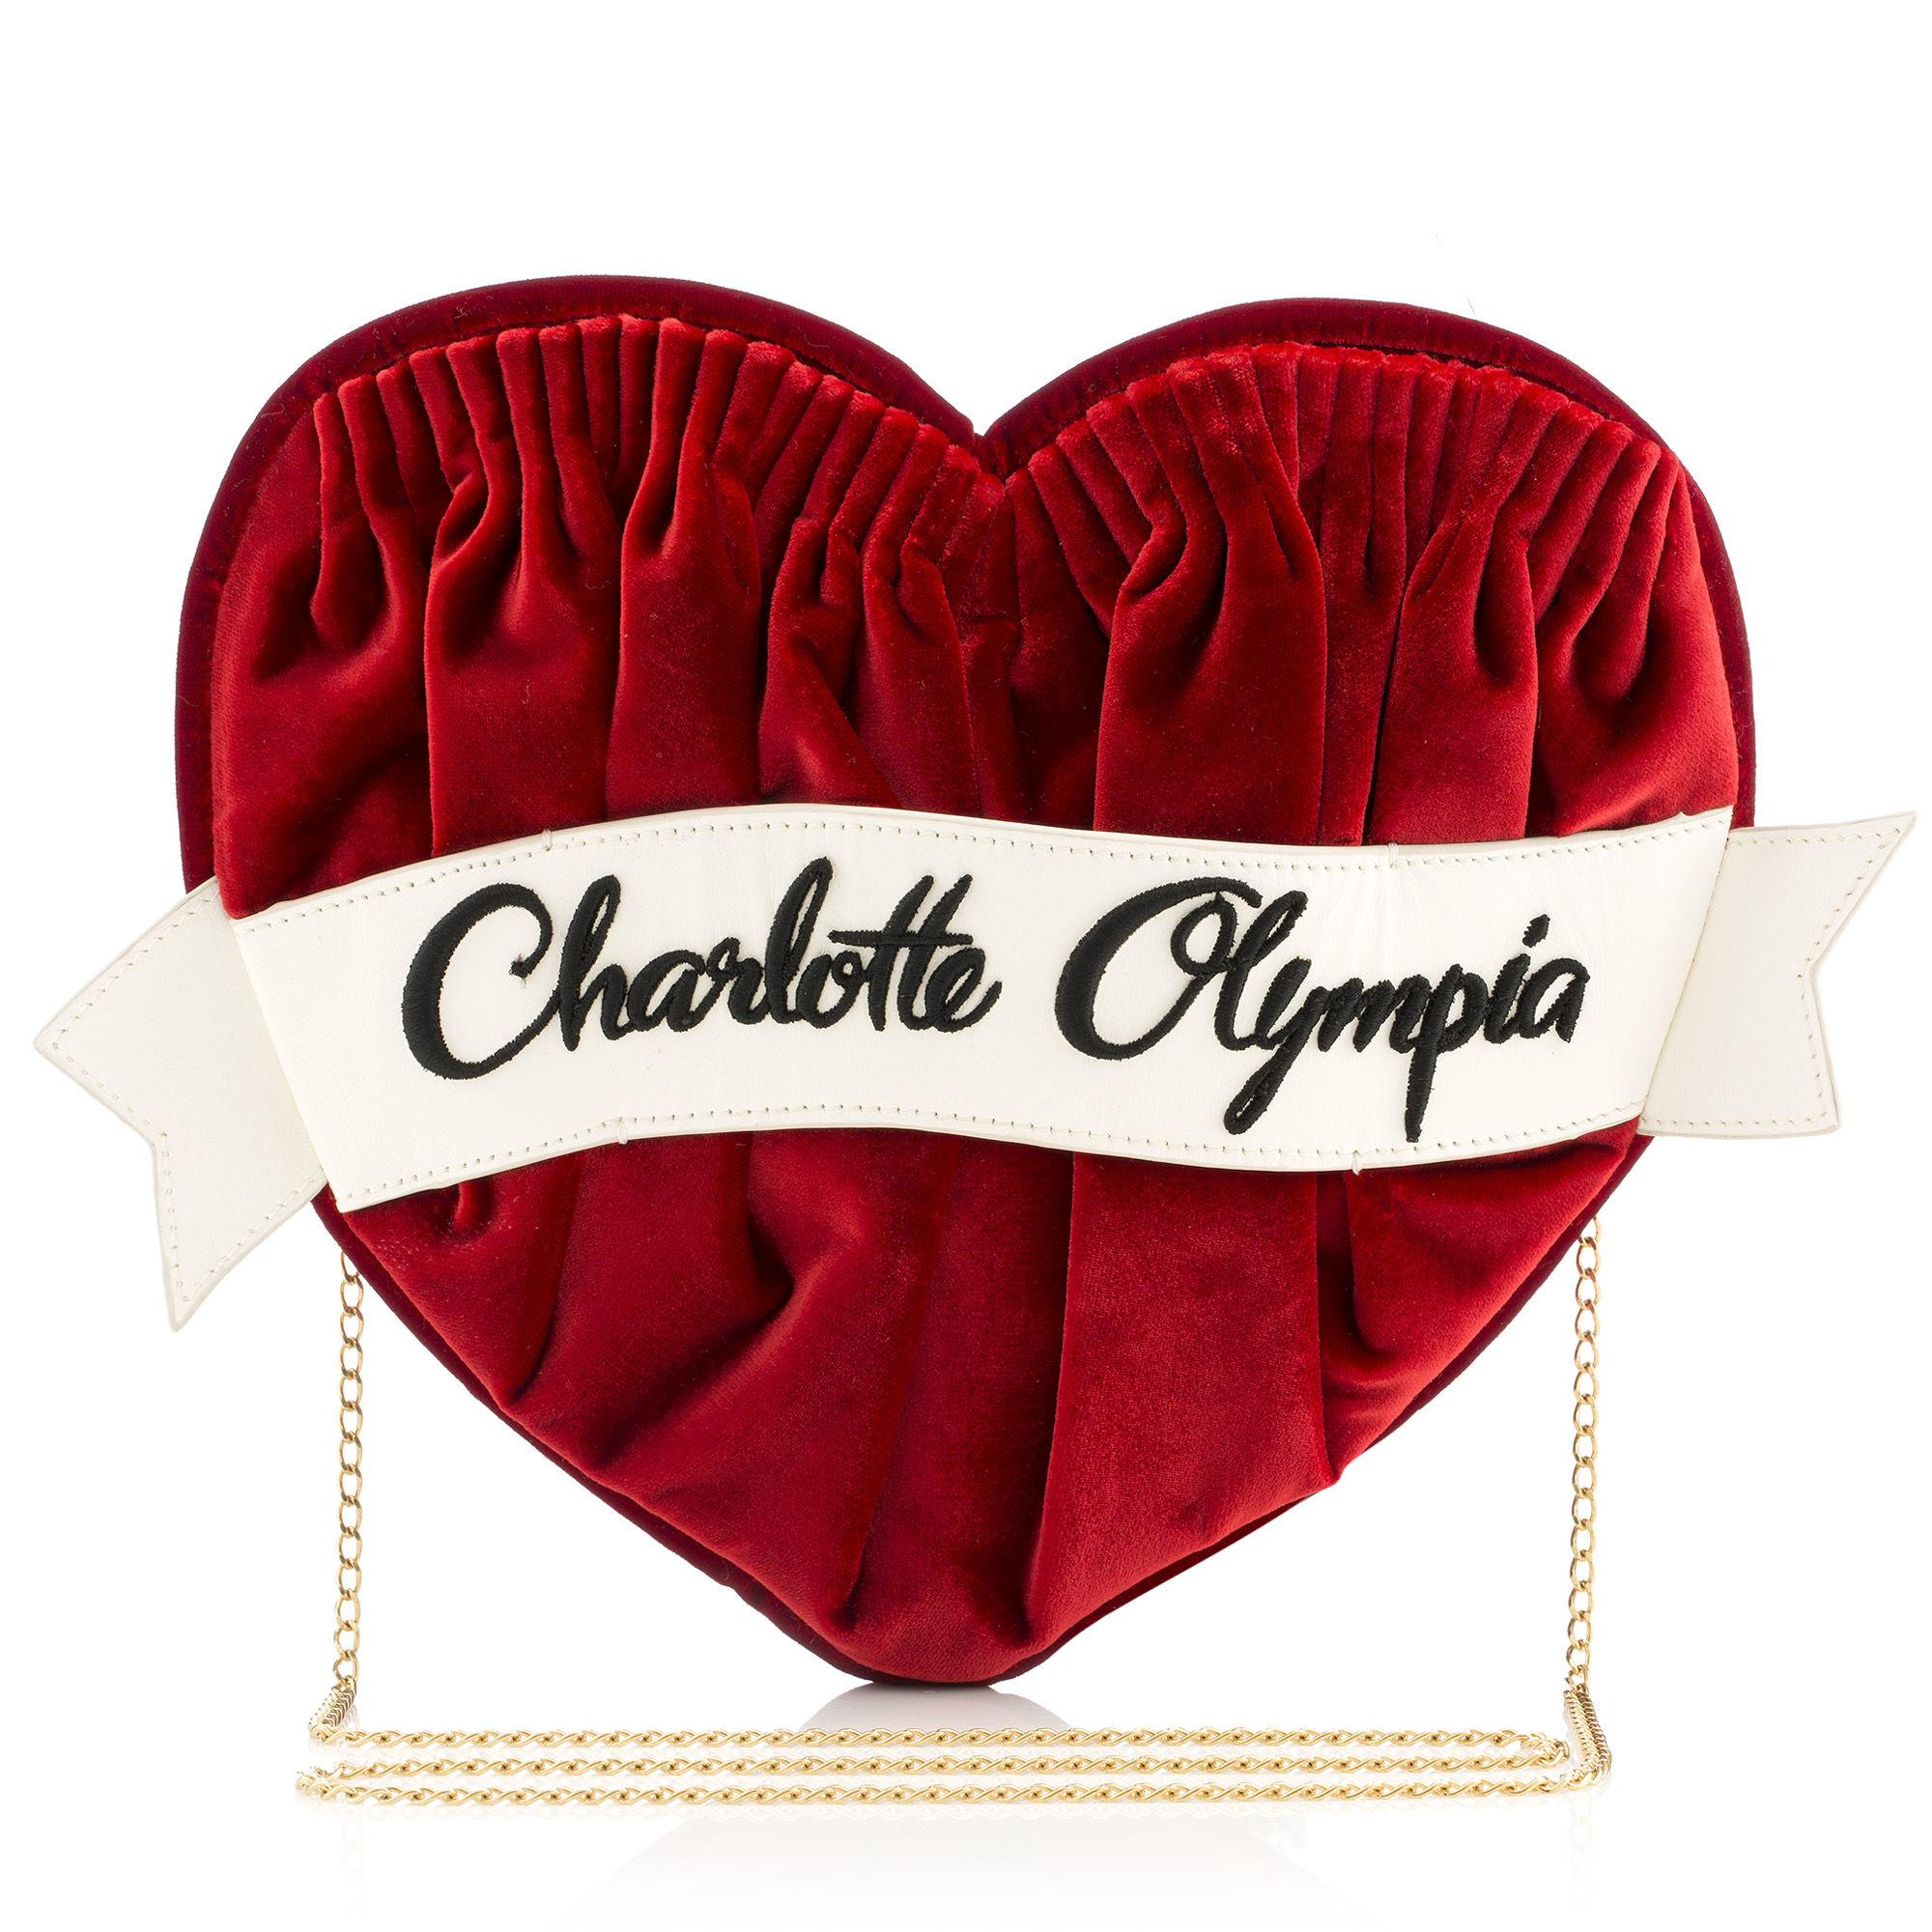 Charlotte Olympia Forever Clutch Bag In Red